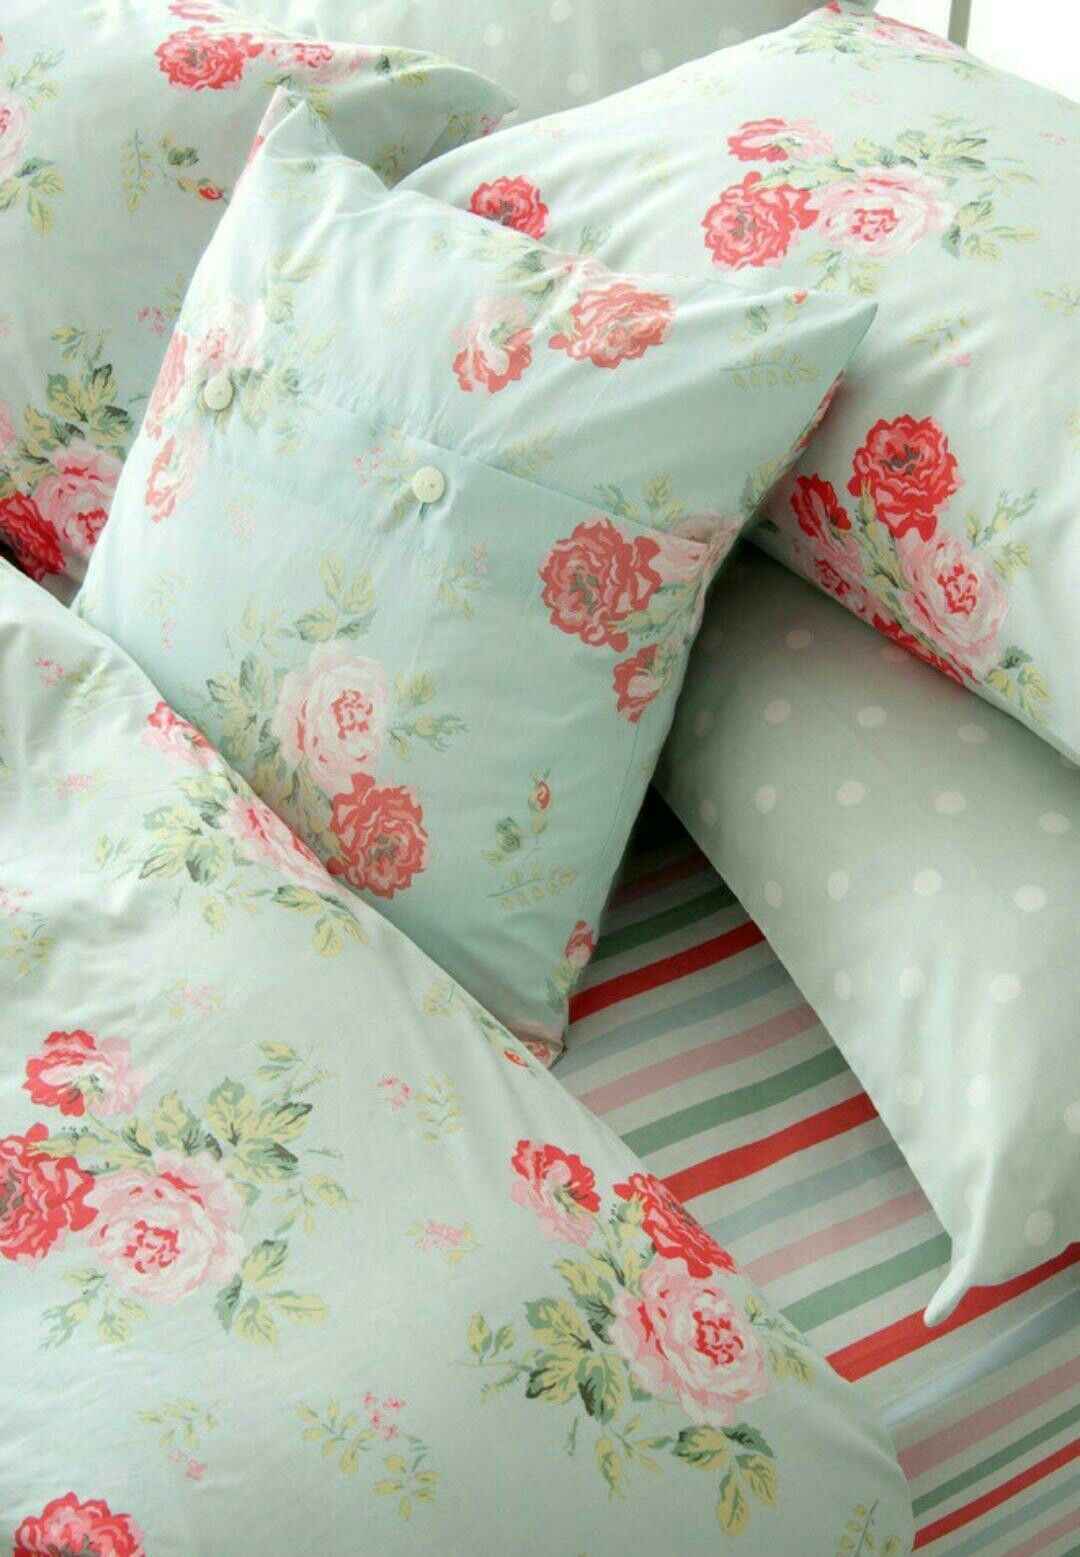 I love cath kidston especially mixin all her patterns